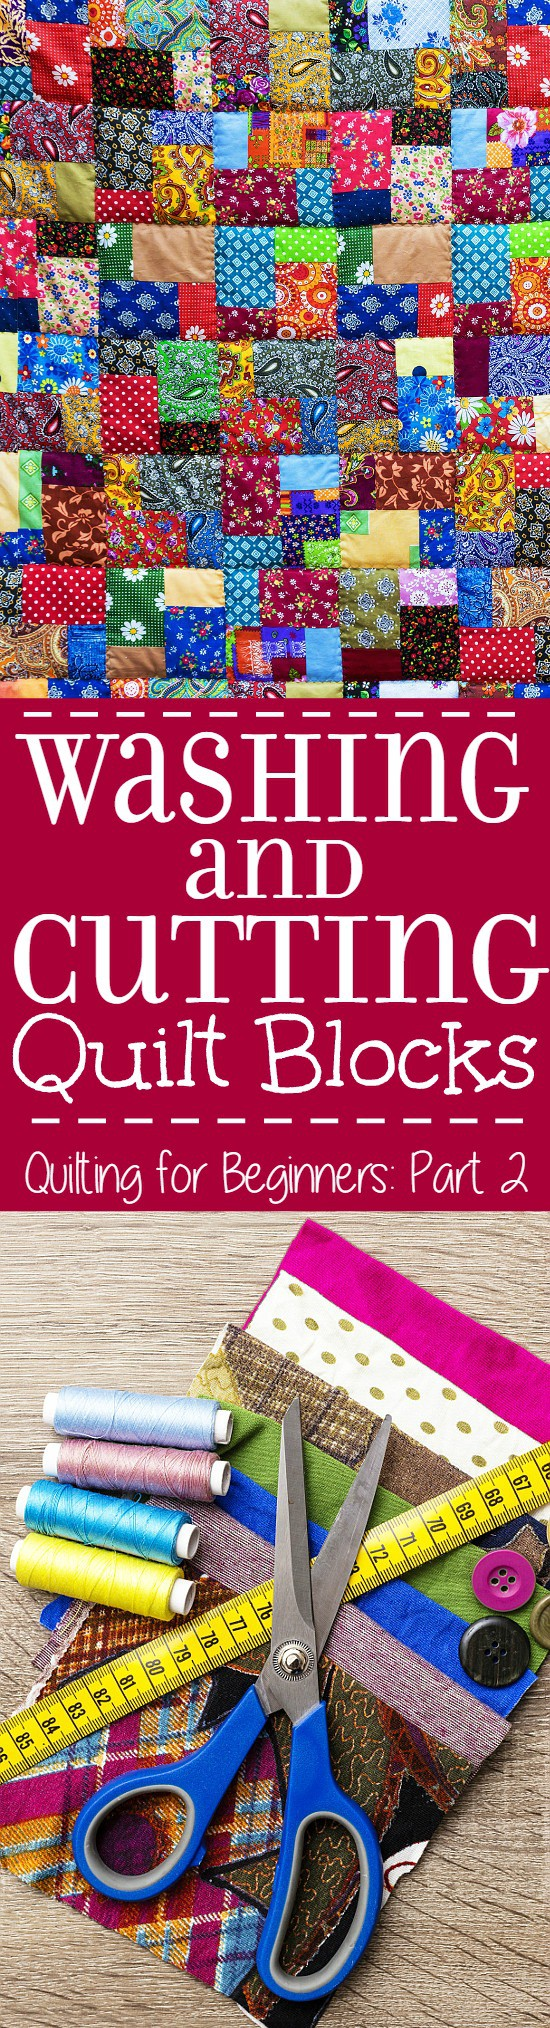 Washing and Cutting Quilt Blocks - Part 2 in a 5-part Quilting for Beginners series.  This Washing and Cutting Quilt Blocks section will walk you through washing your fabric, cutting quilt blocks, and ironing and prepping.  Make your own DIY sewing quilt with this step-by-step tutorial!